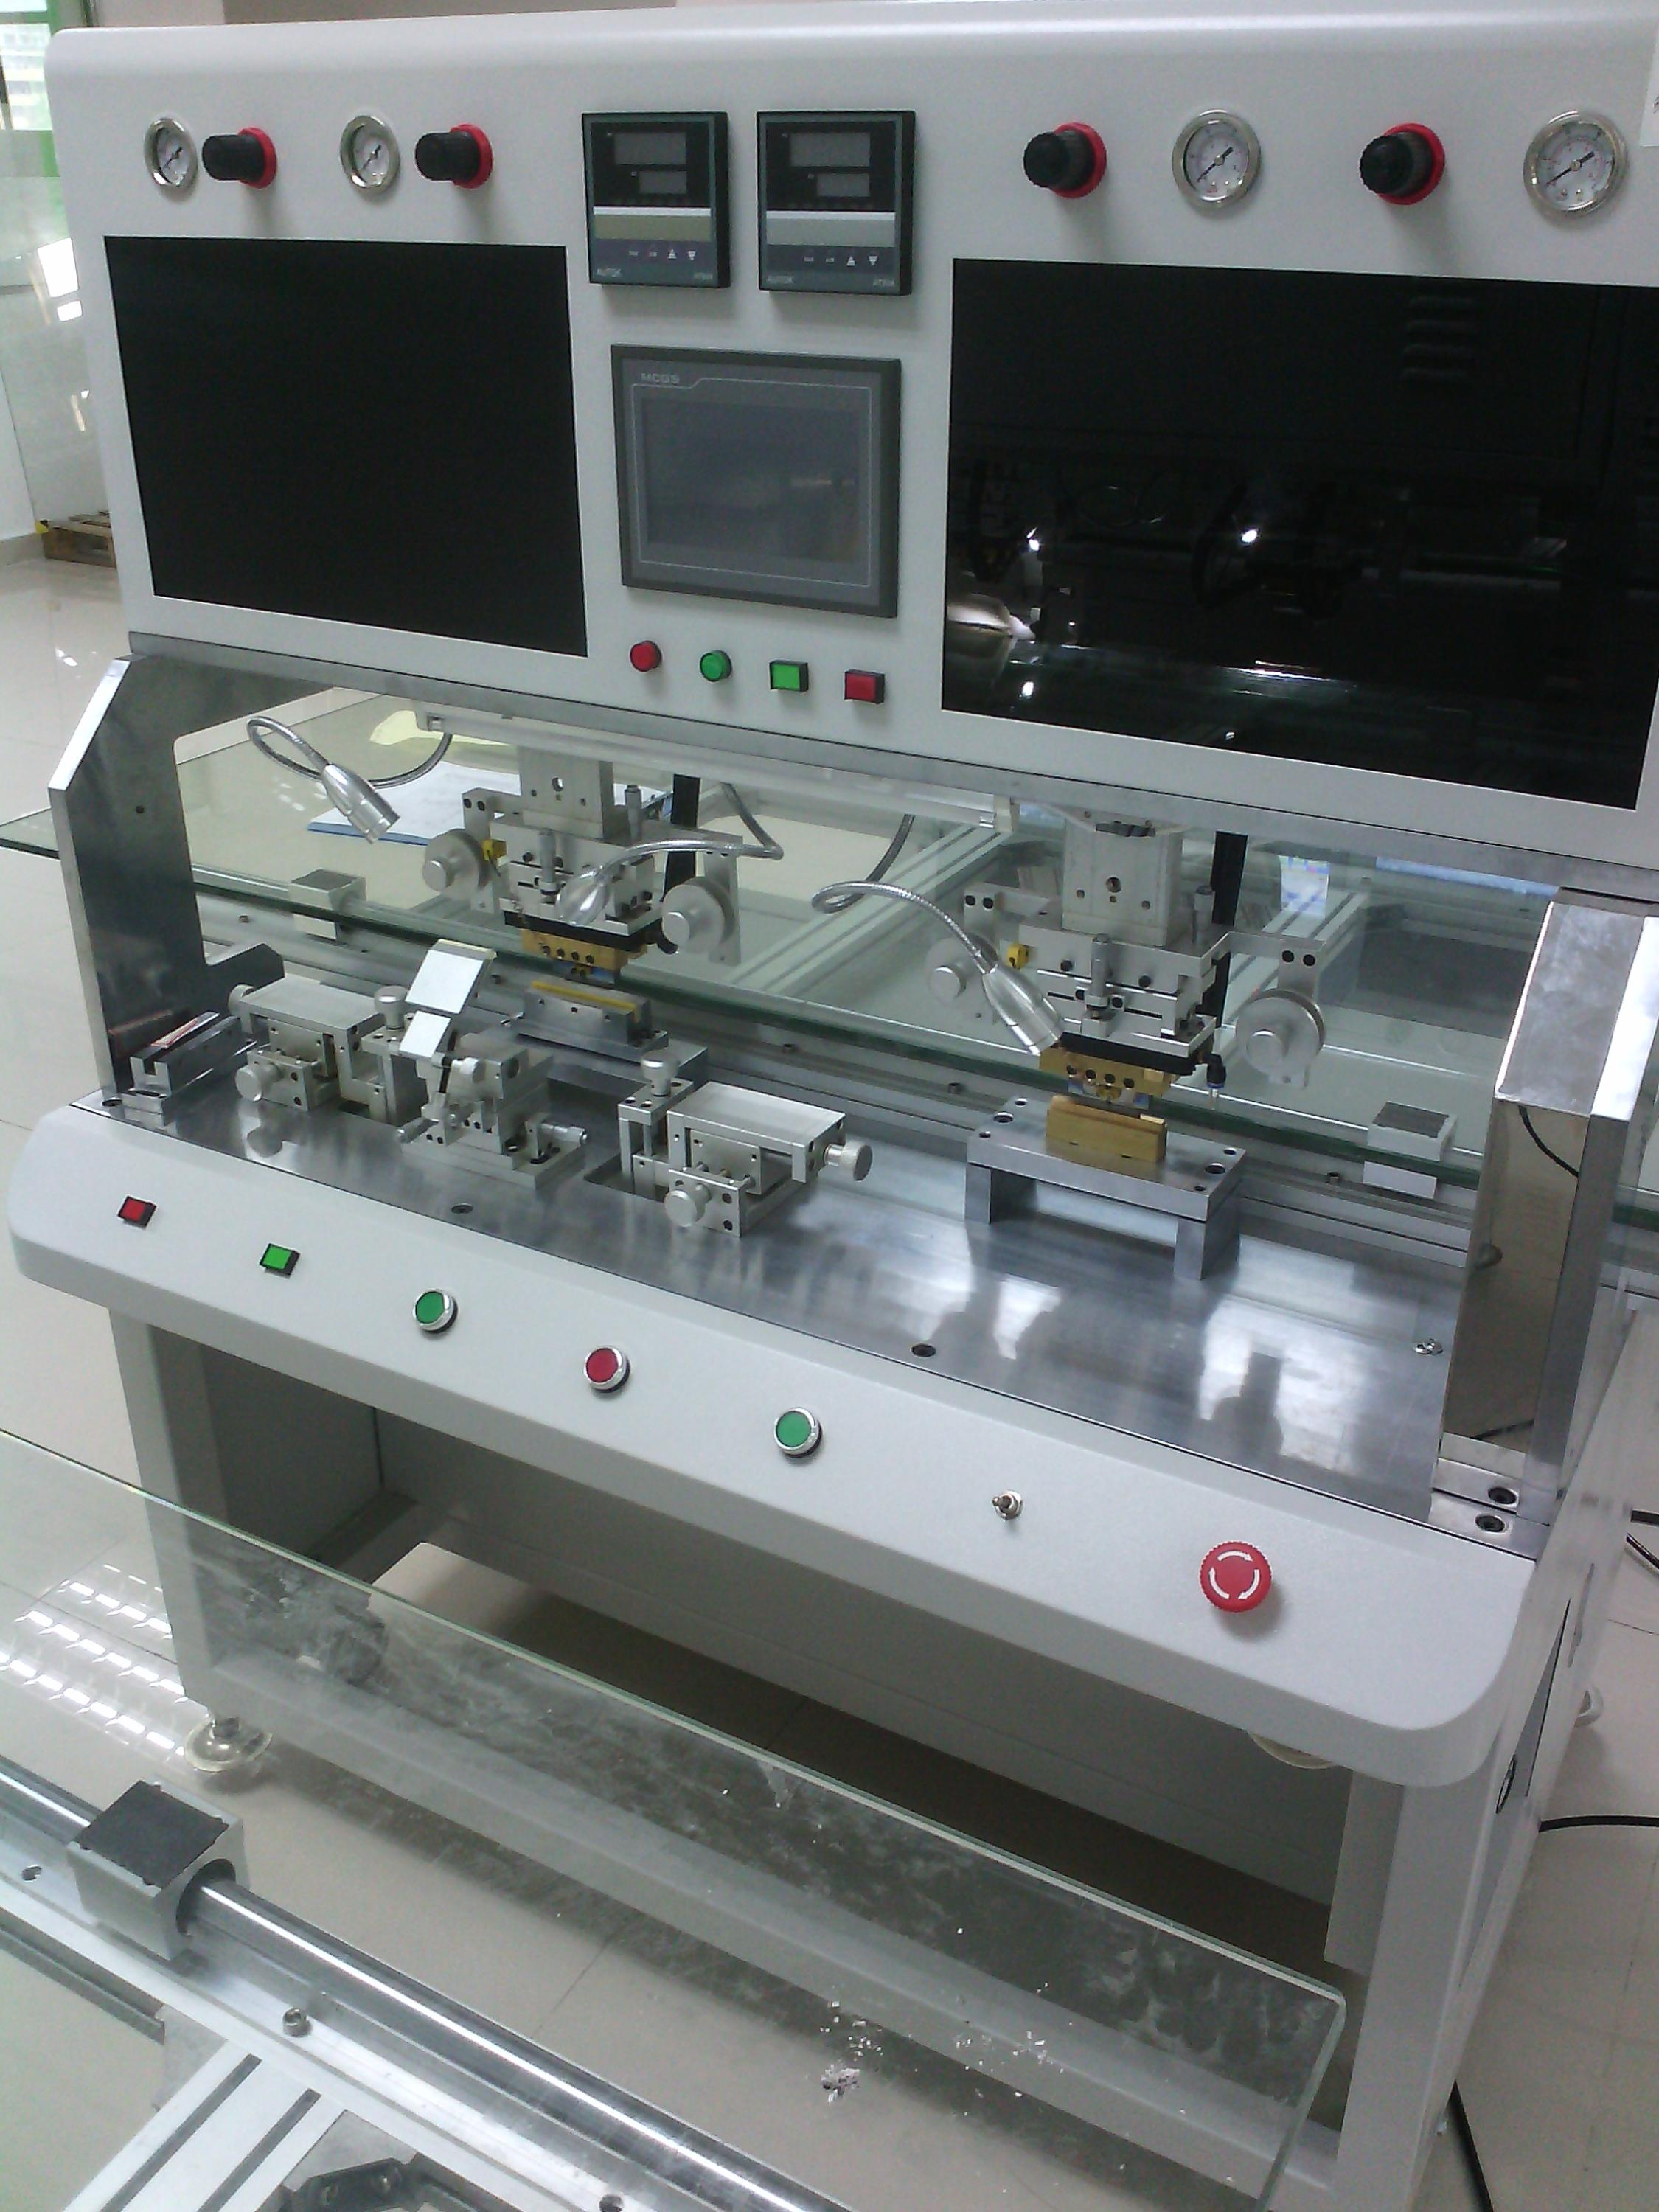 SS6302-C1LS TAB COF FOG COG FPC LCD module Drive IC ACF bonding machine use for Samsung LG BOE CHIMEI Sharp screen opencell